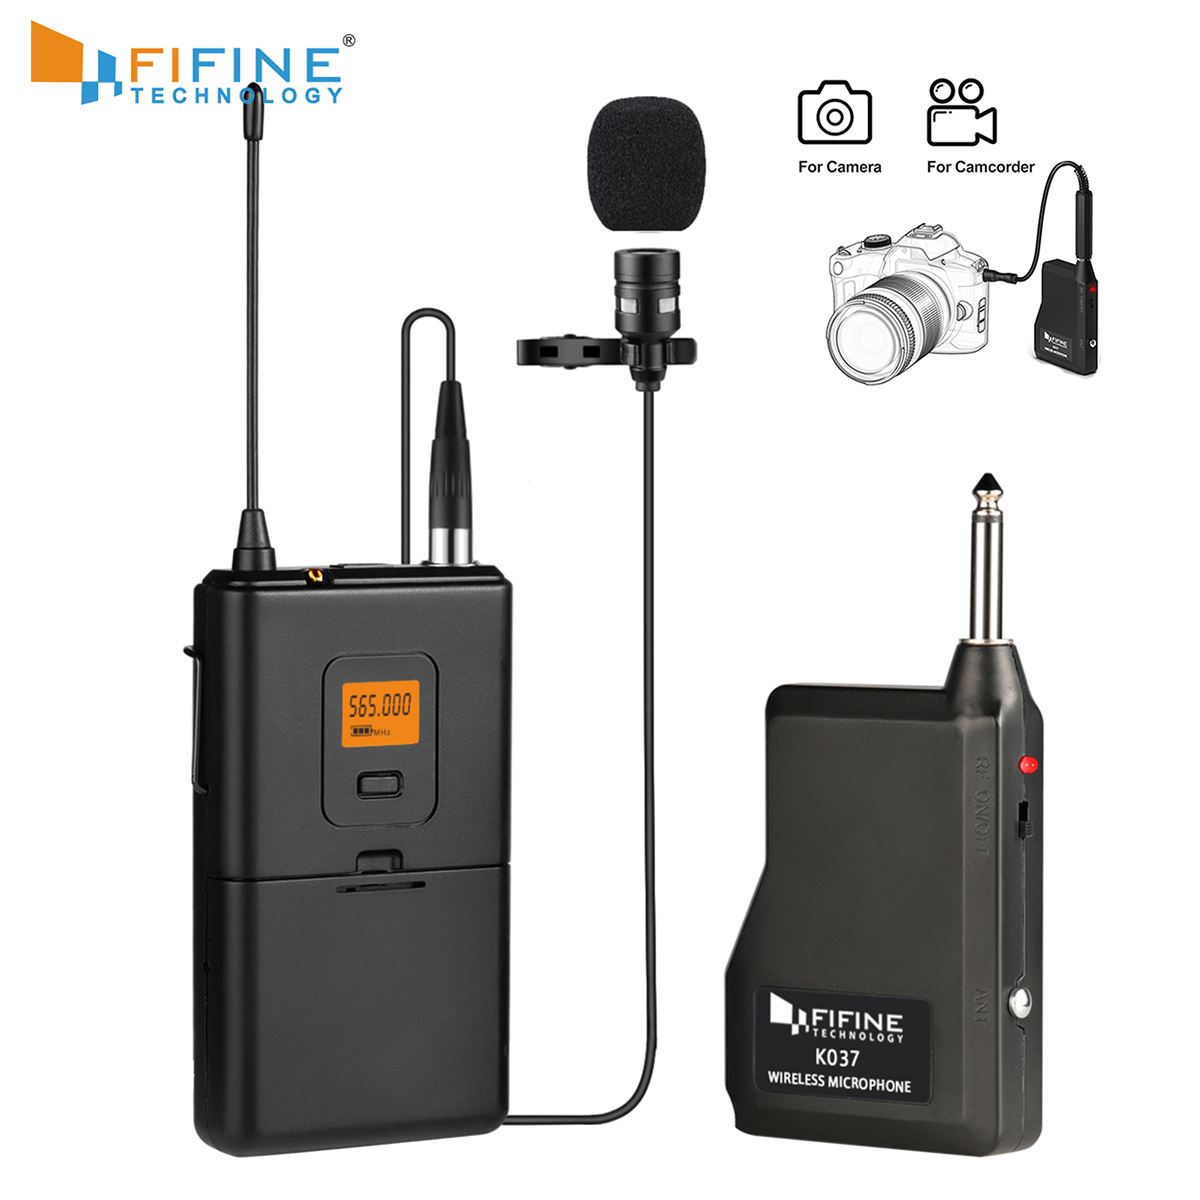 Fifine 20-Channel UHF Wireless Lavalier Lapel Microphone System with Bodypack Transmitter Lapel Mic  Receiver for camera phones